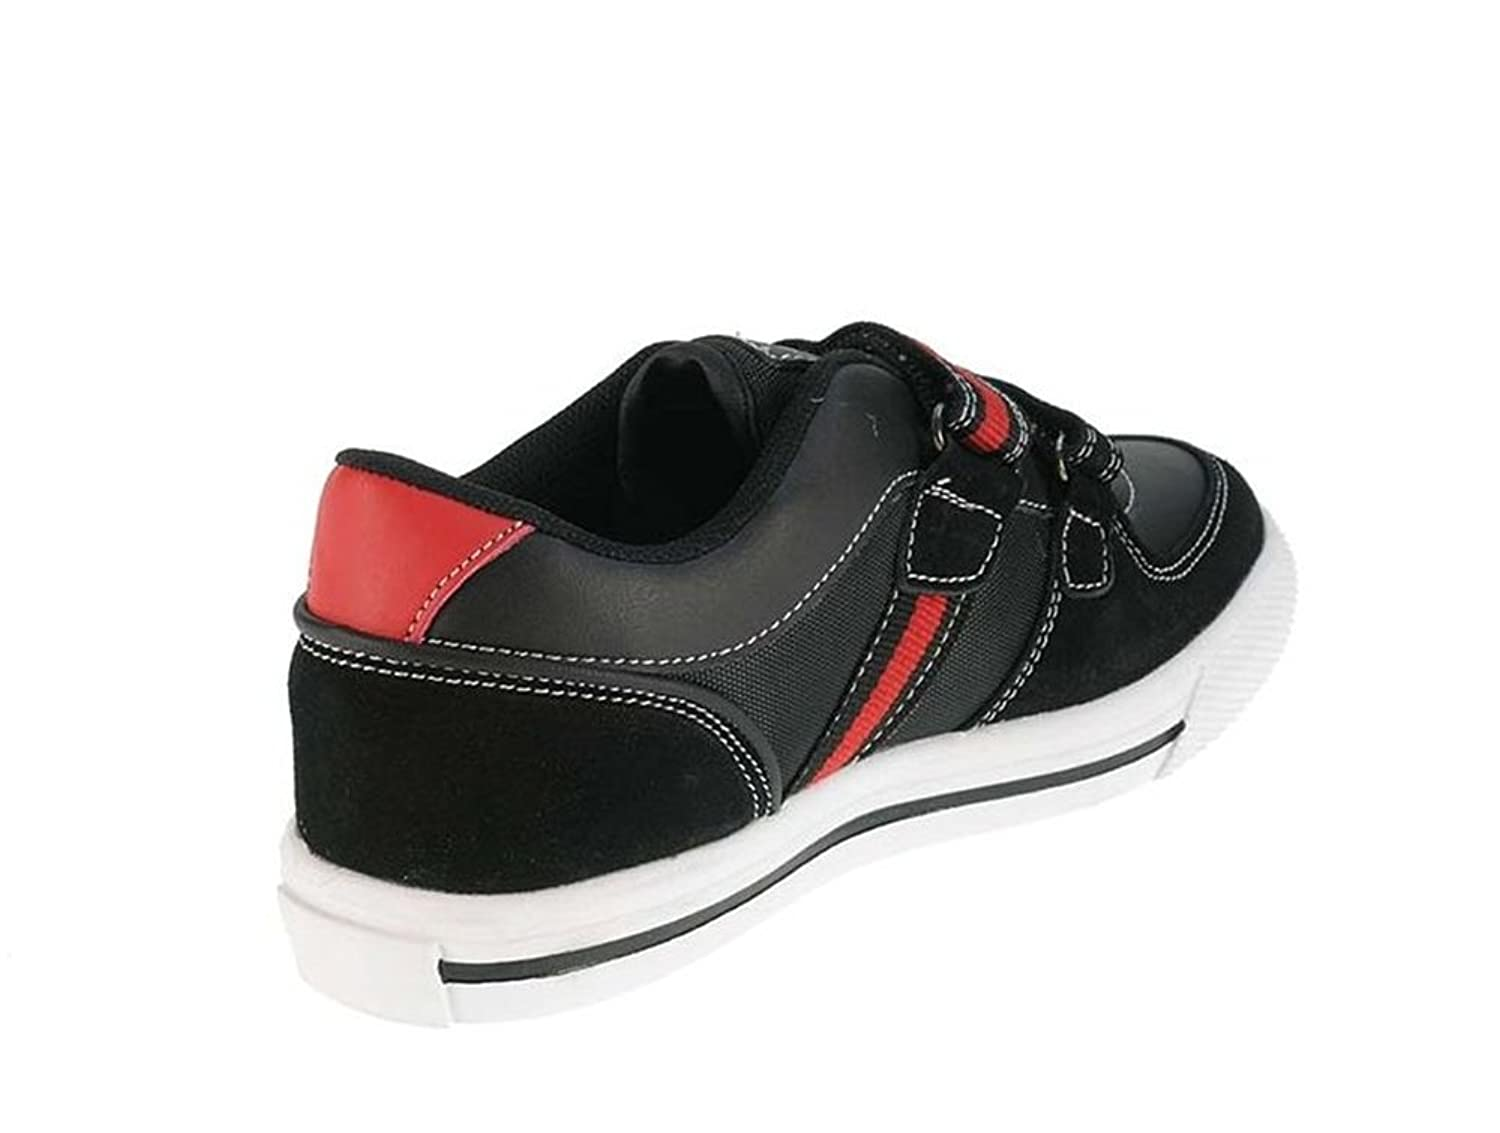 Beppi Boys Black Velcro Trainers UK Toddler Kids Shoes Size 10 - 2.5 (1 UK):  Amazon.co.uk: Shoes & Bags